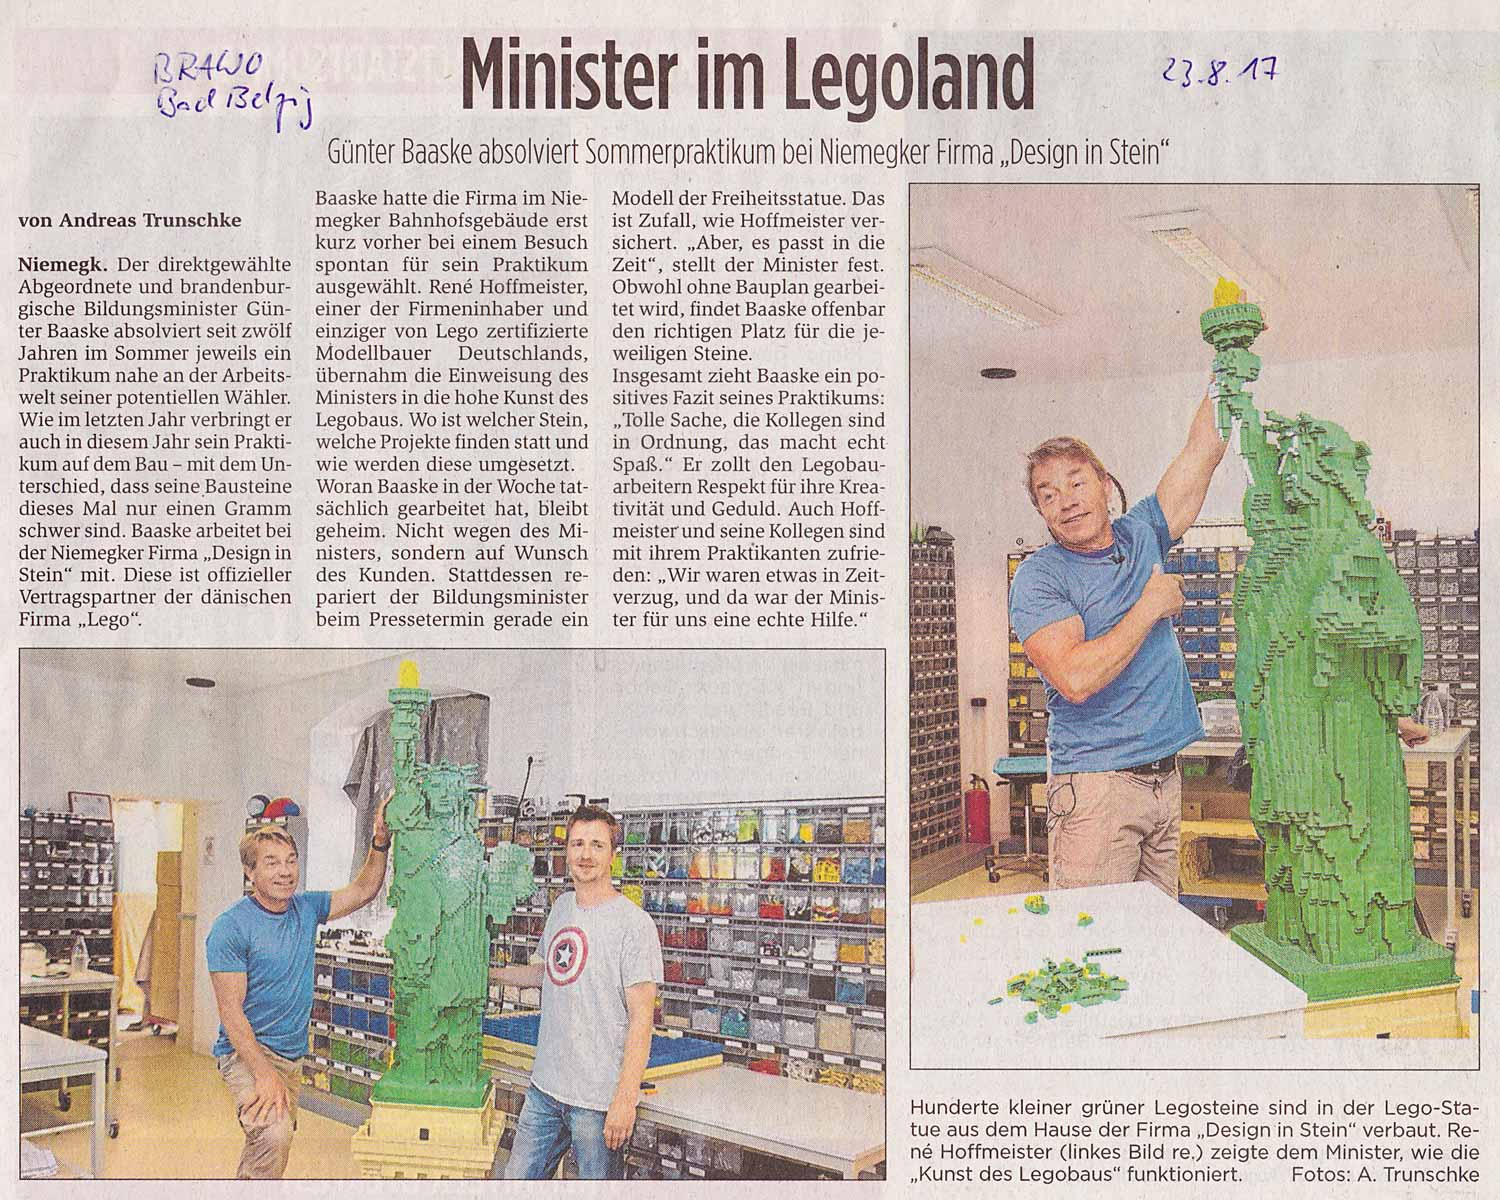 Günter Baaske, Lego, Design in Stein